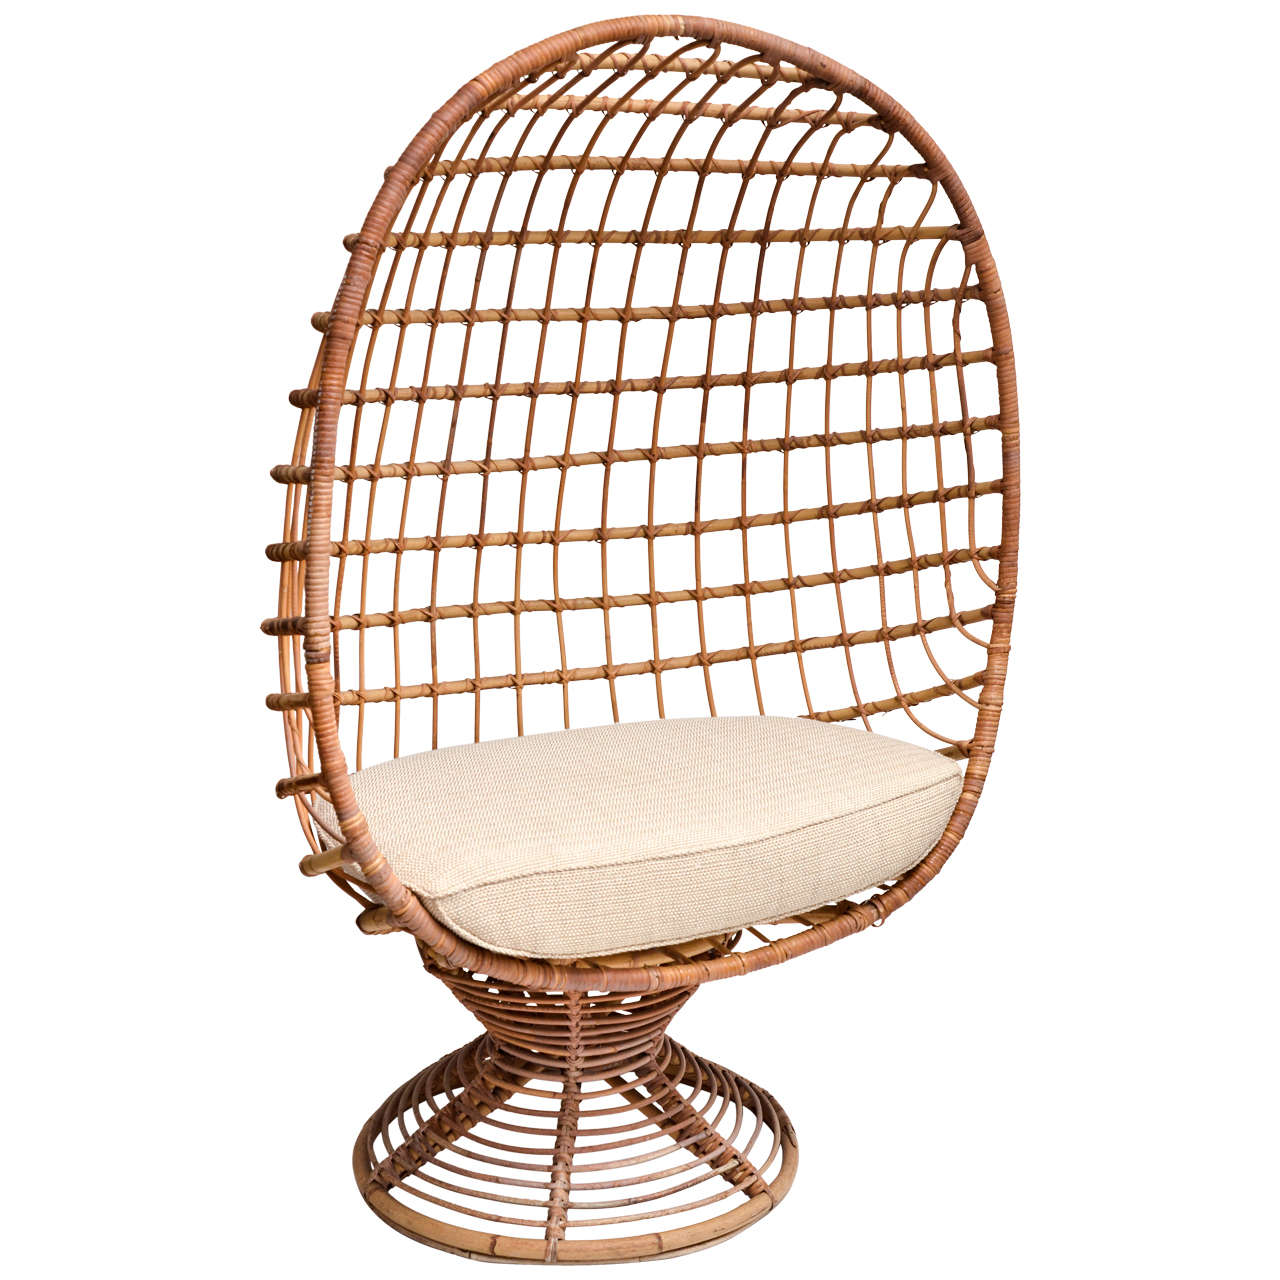 Enclosed Bamboo Canopy Chair with Upholstered Seat Cushion For Sale  sc 1 st  1stDibs & Enclosed Bamboo Canopy Chair with Upholstered Seat Cushion For ...